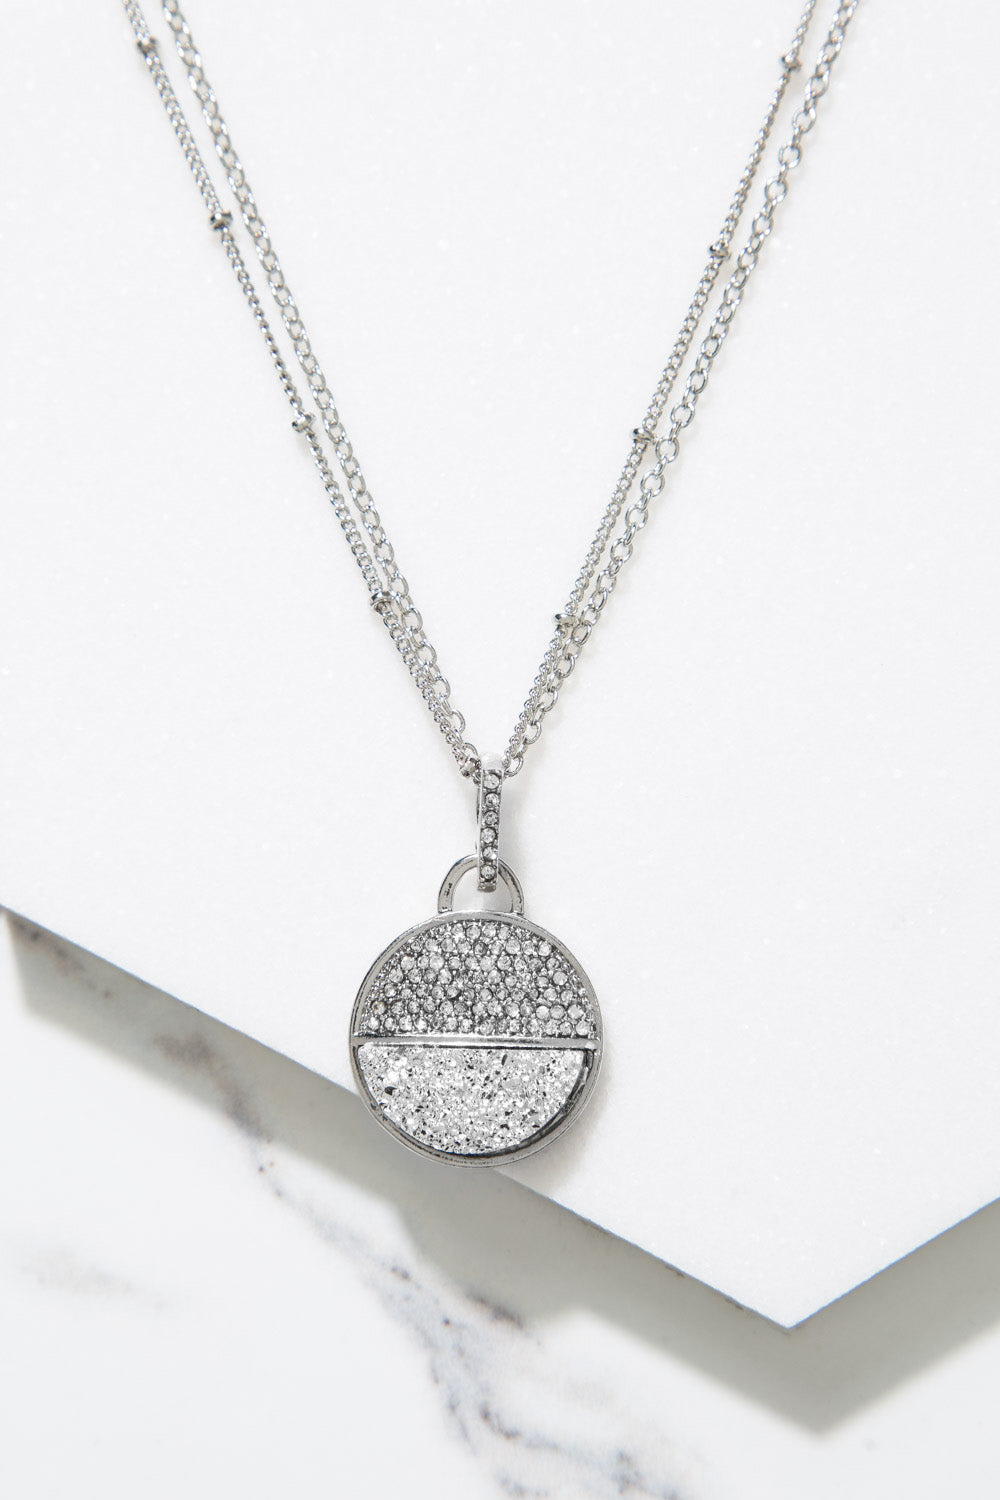 Type 4 Half Moon Necklace